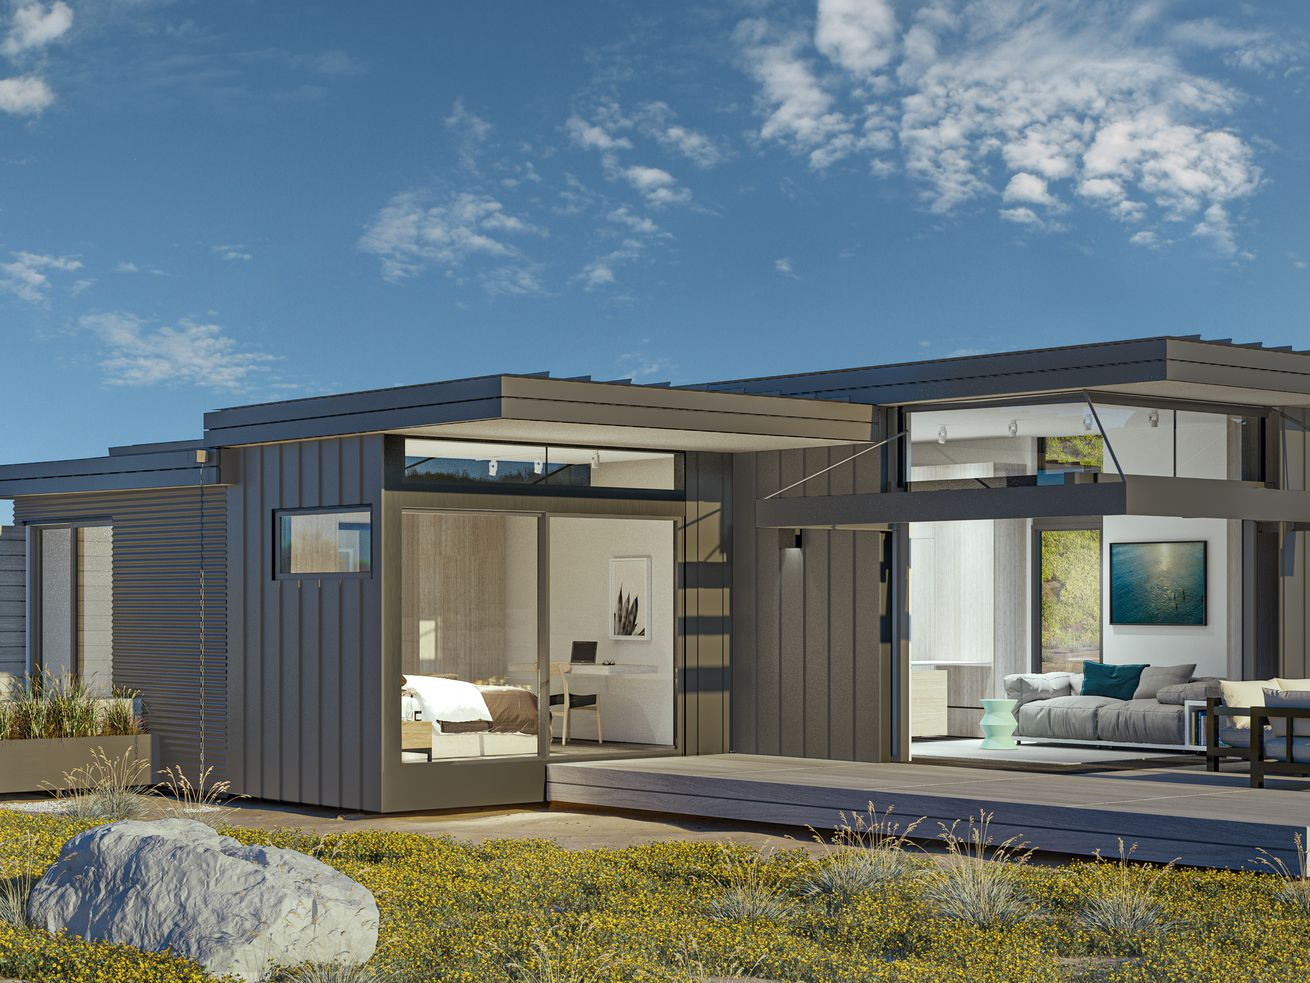 New modular prefab homes come in a wide range of sizes